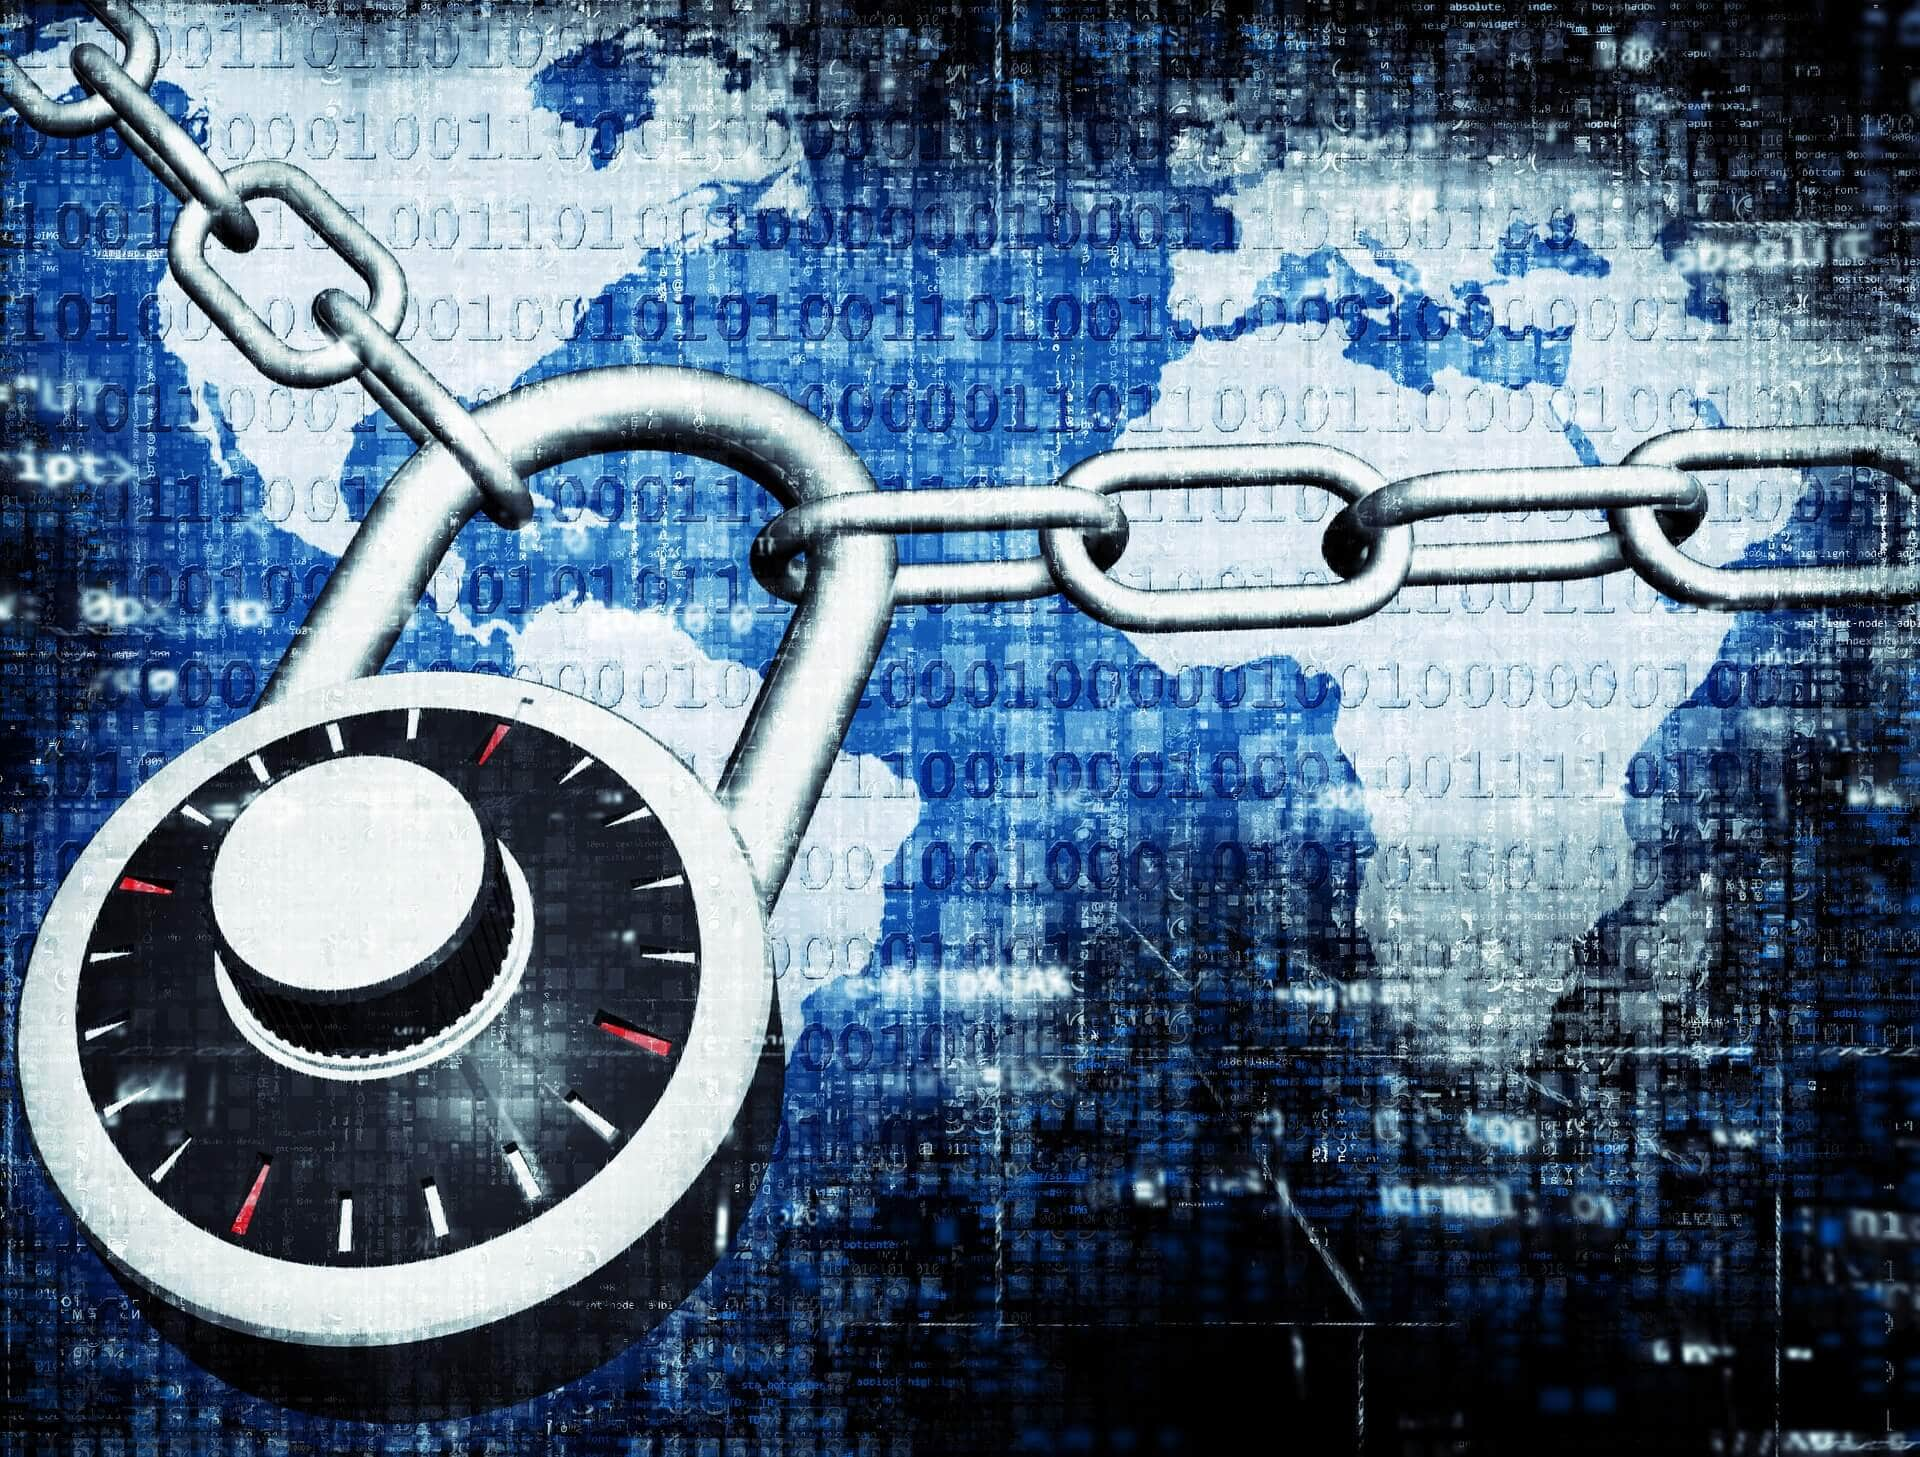 content/de-de/images/repository/isc/2020/how-to-protect-your-internet-privacy.jpg